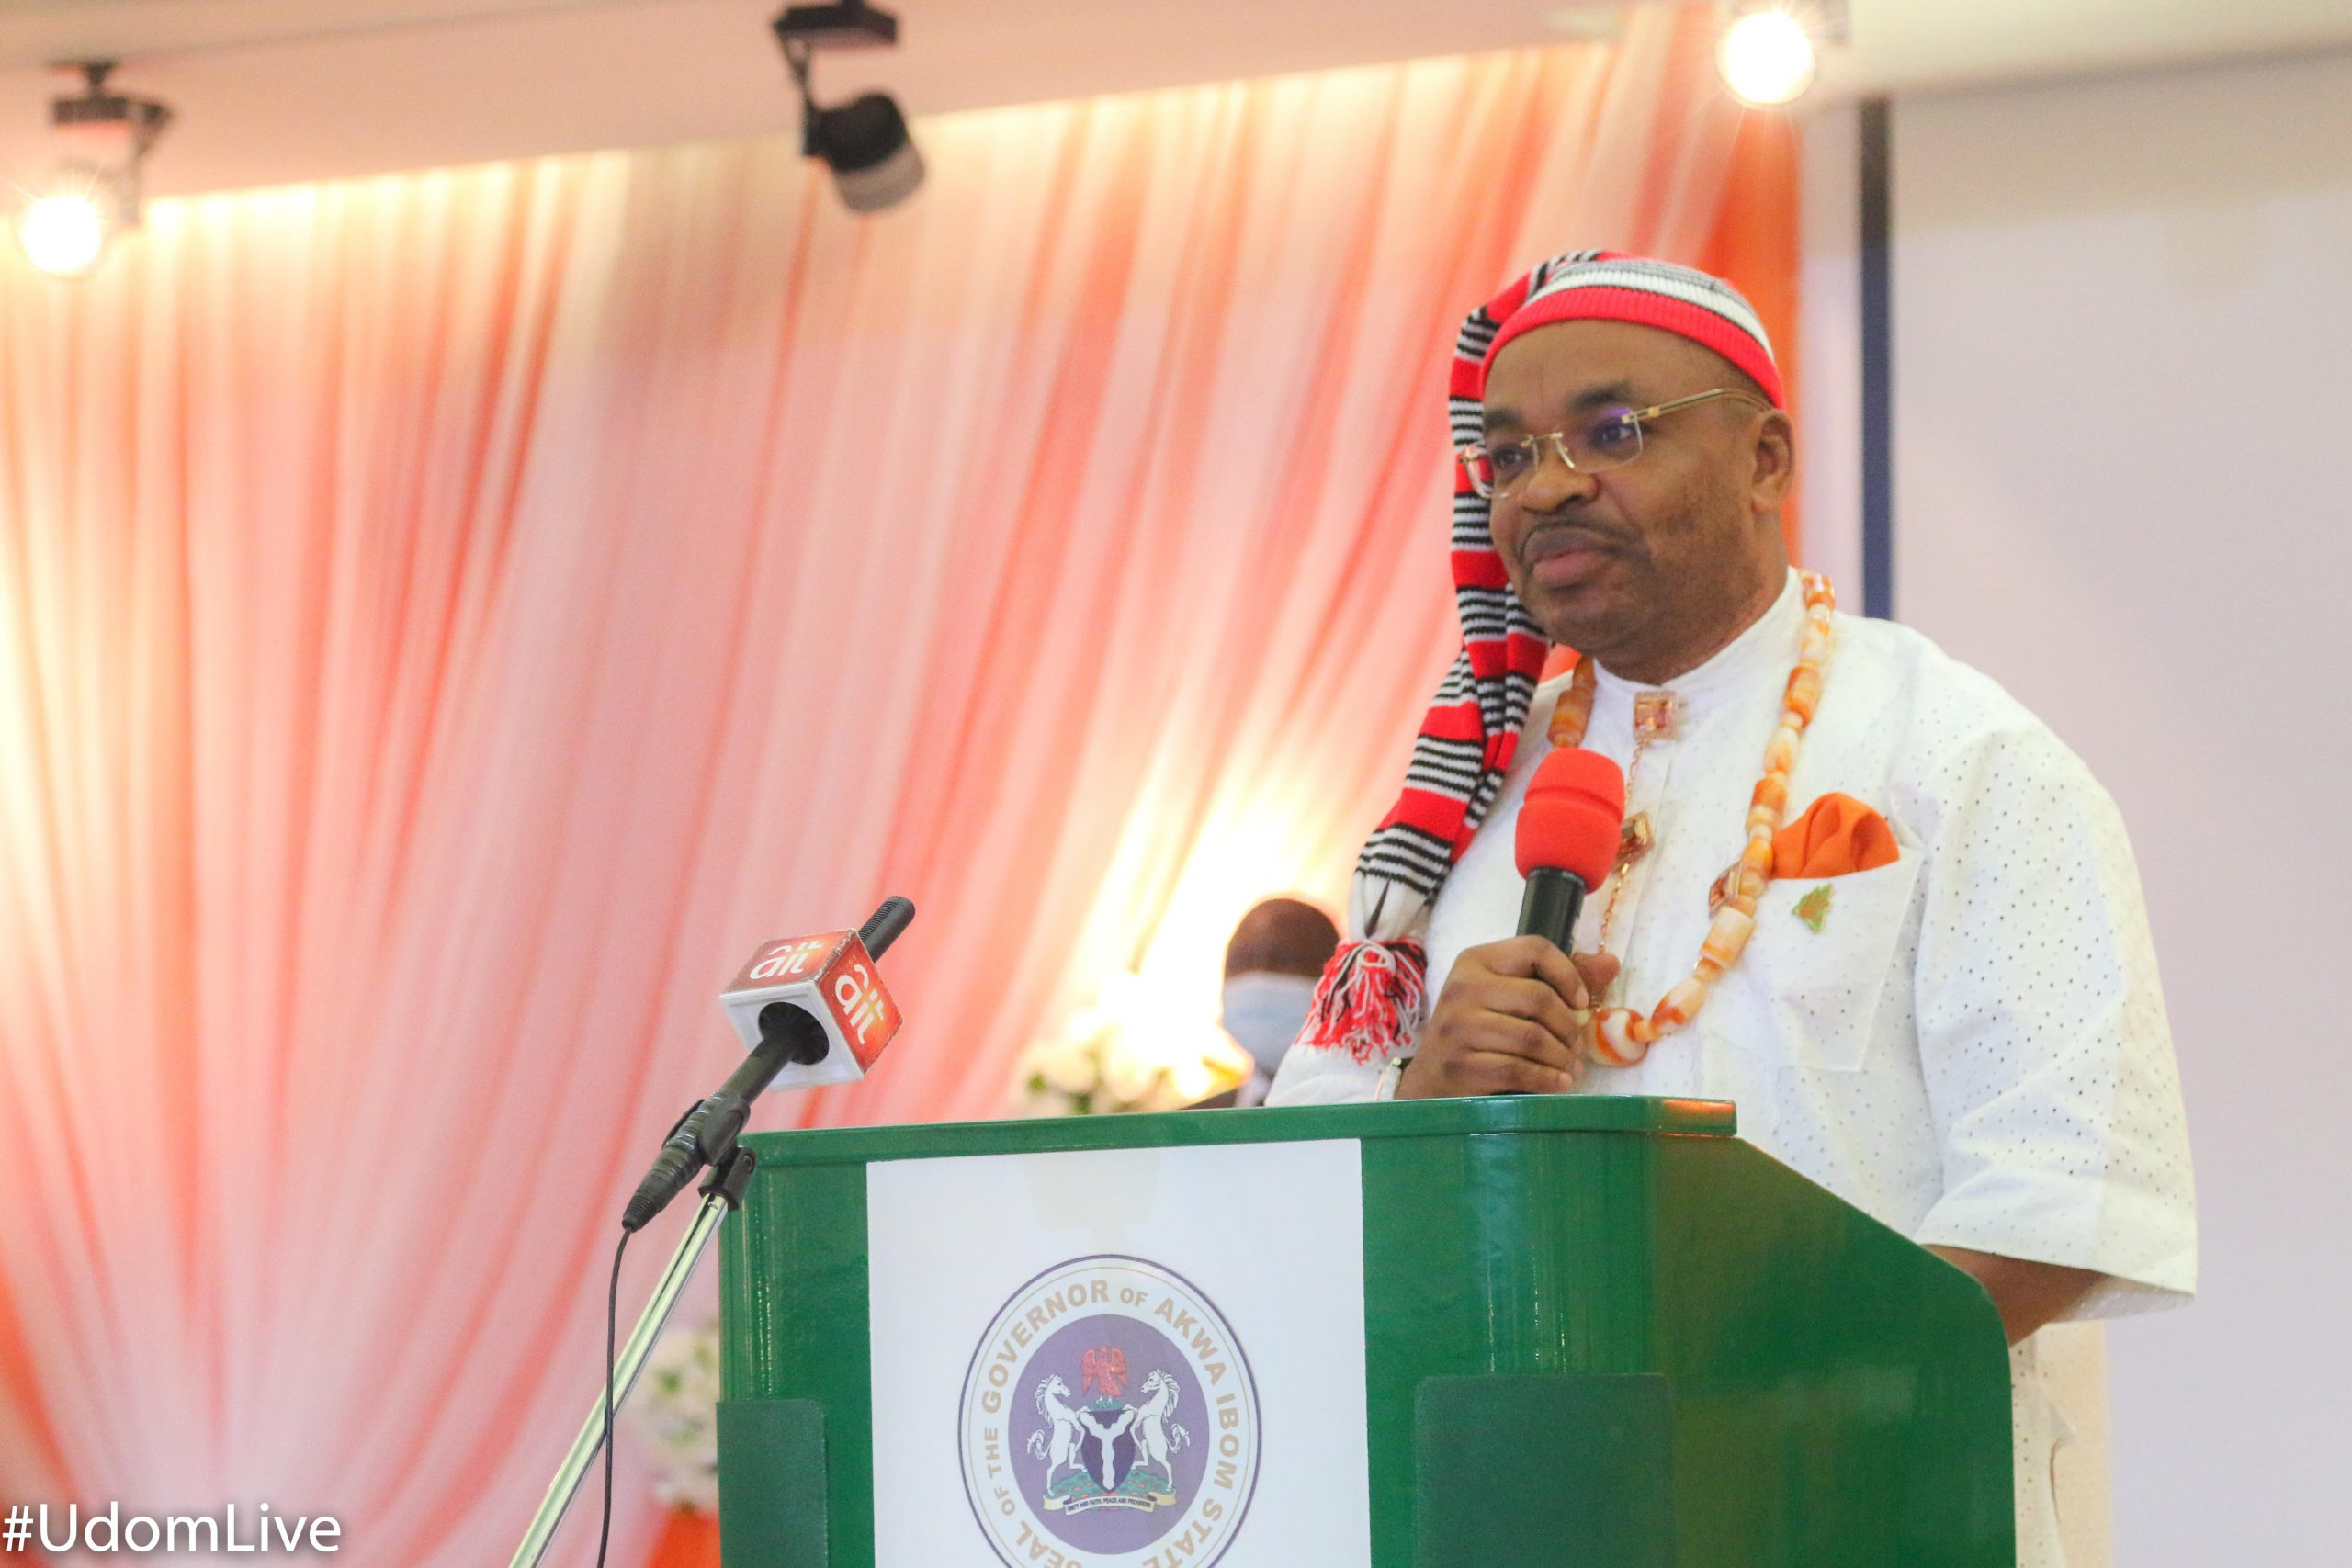 Governor Udom Emmanuel Remarks on the Launching of The State Symbols, Flag and Creed.